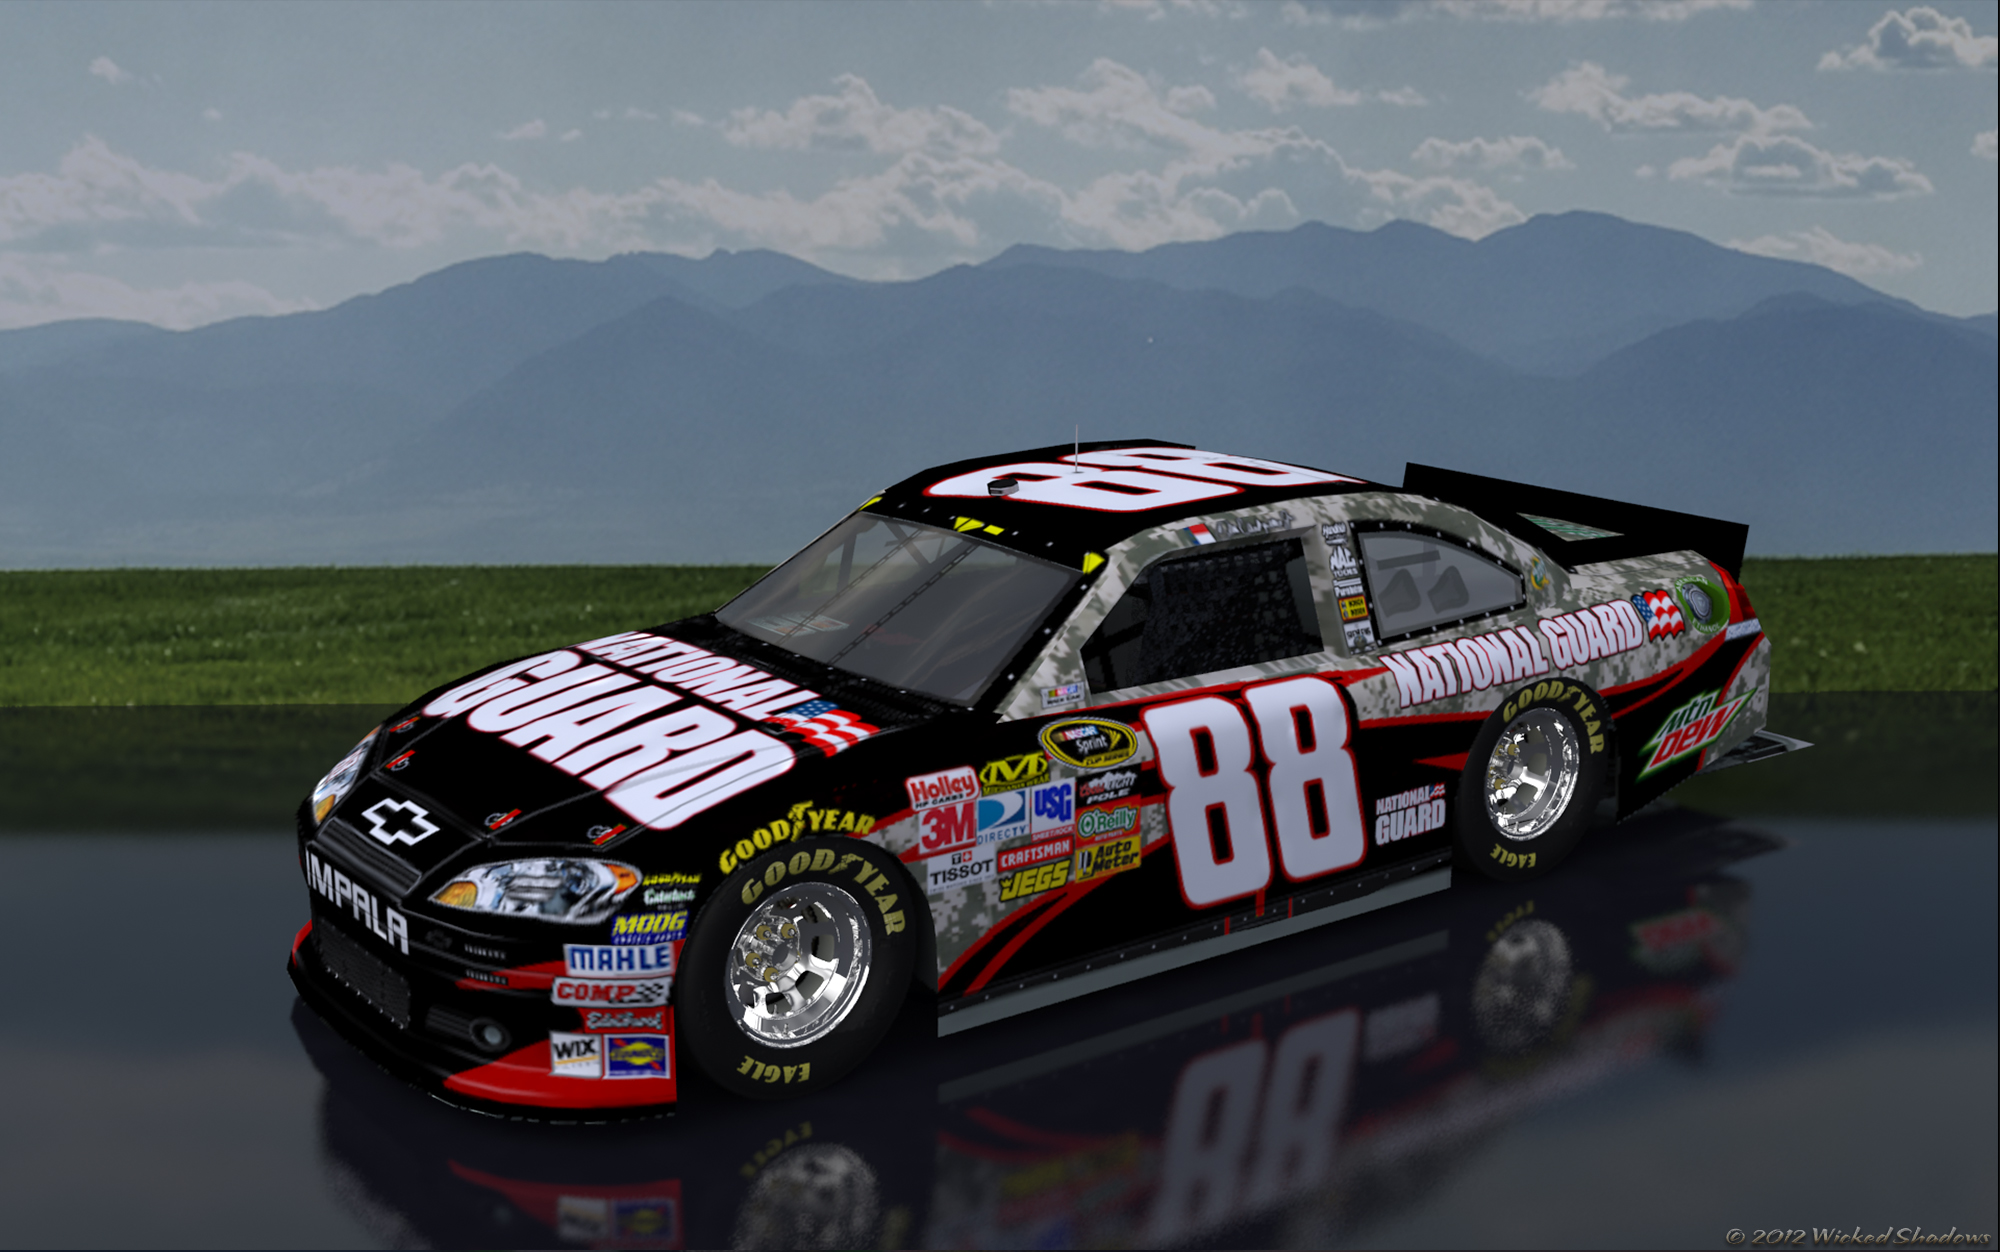 wallpapers by wicked shadows dale earnhardt jr national